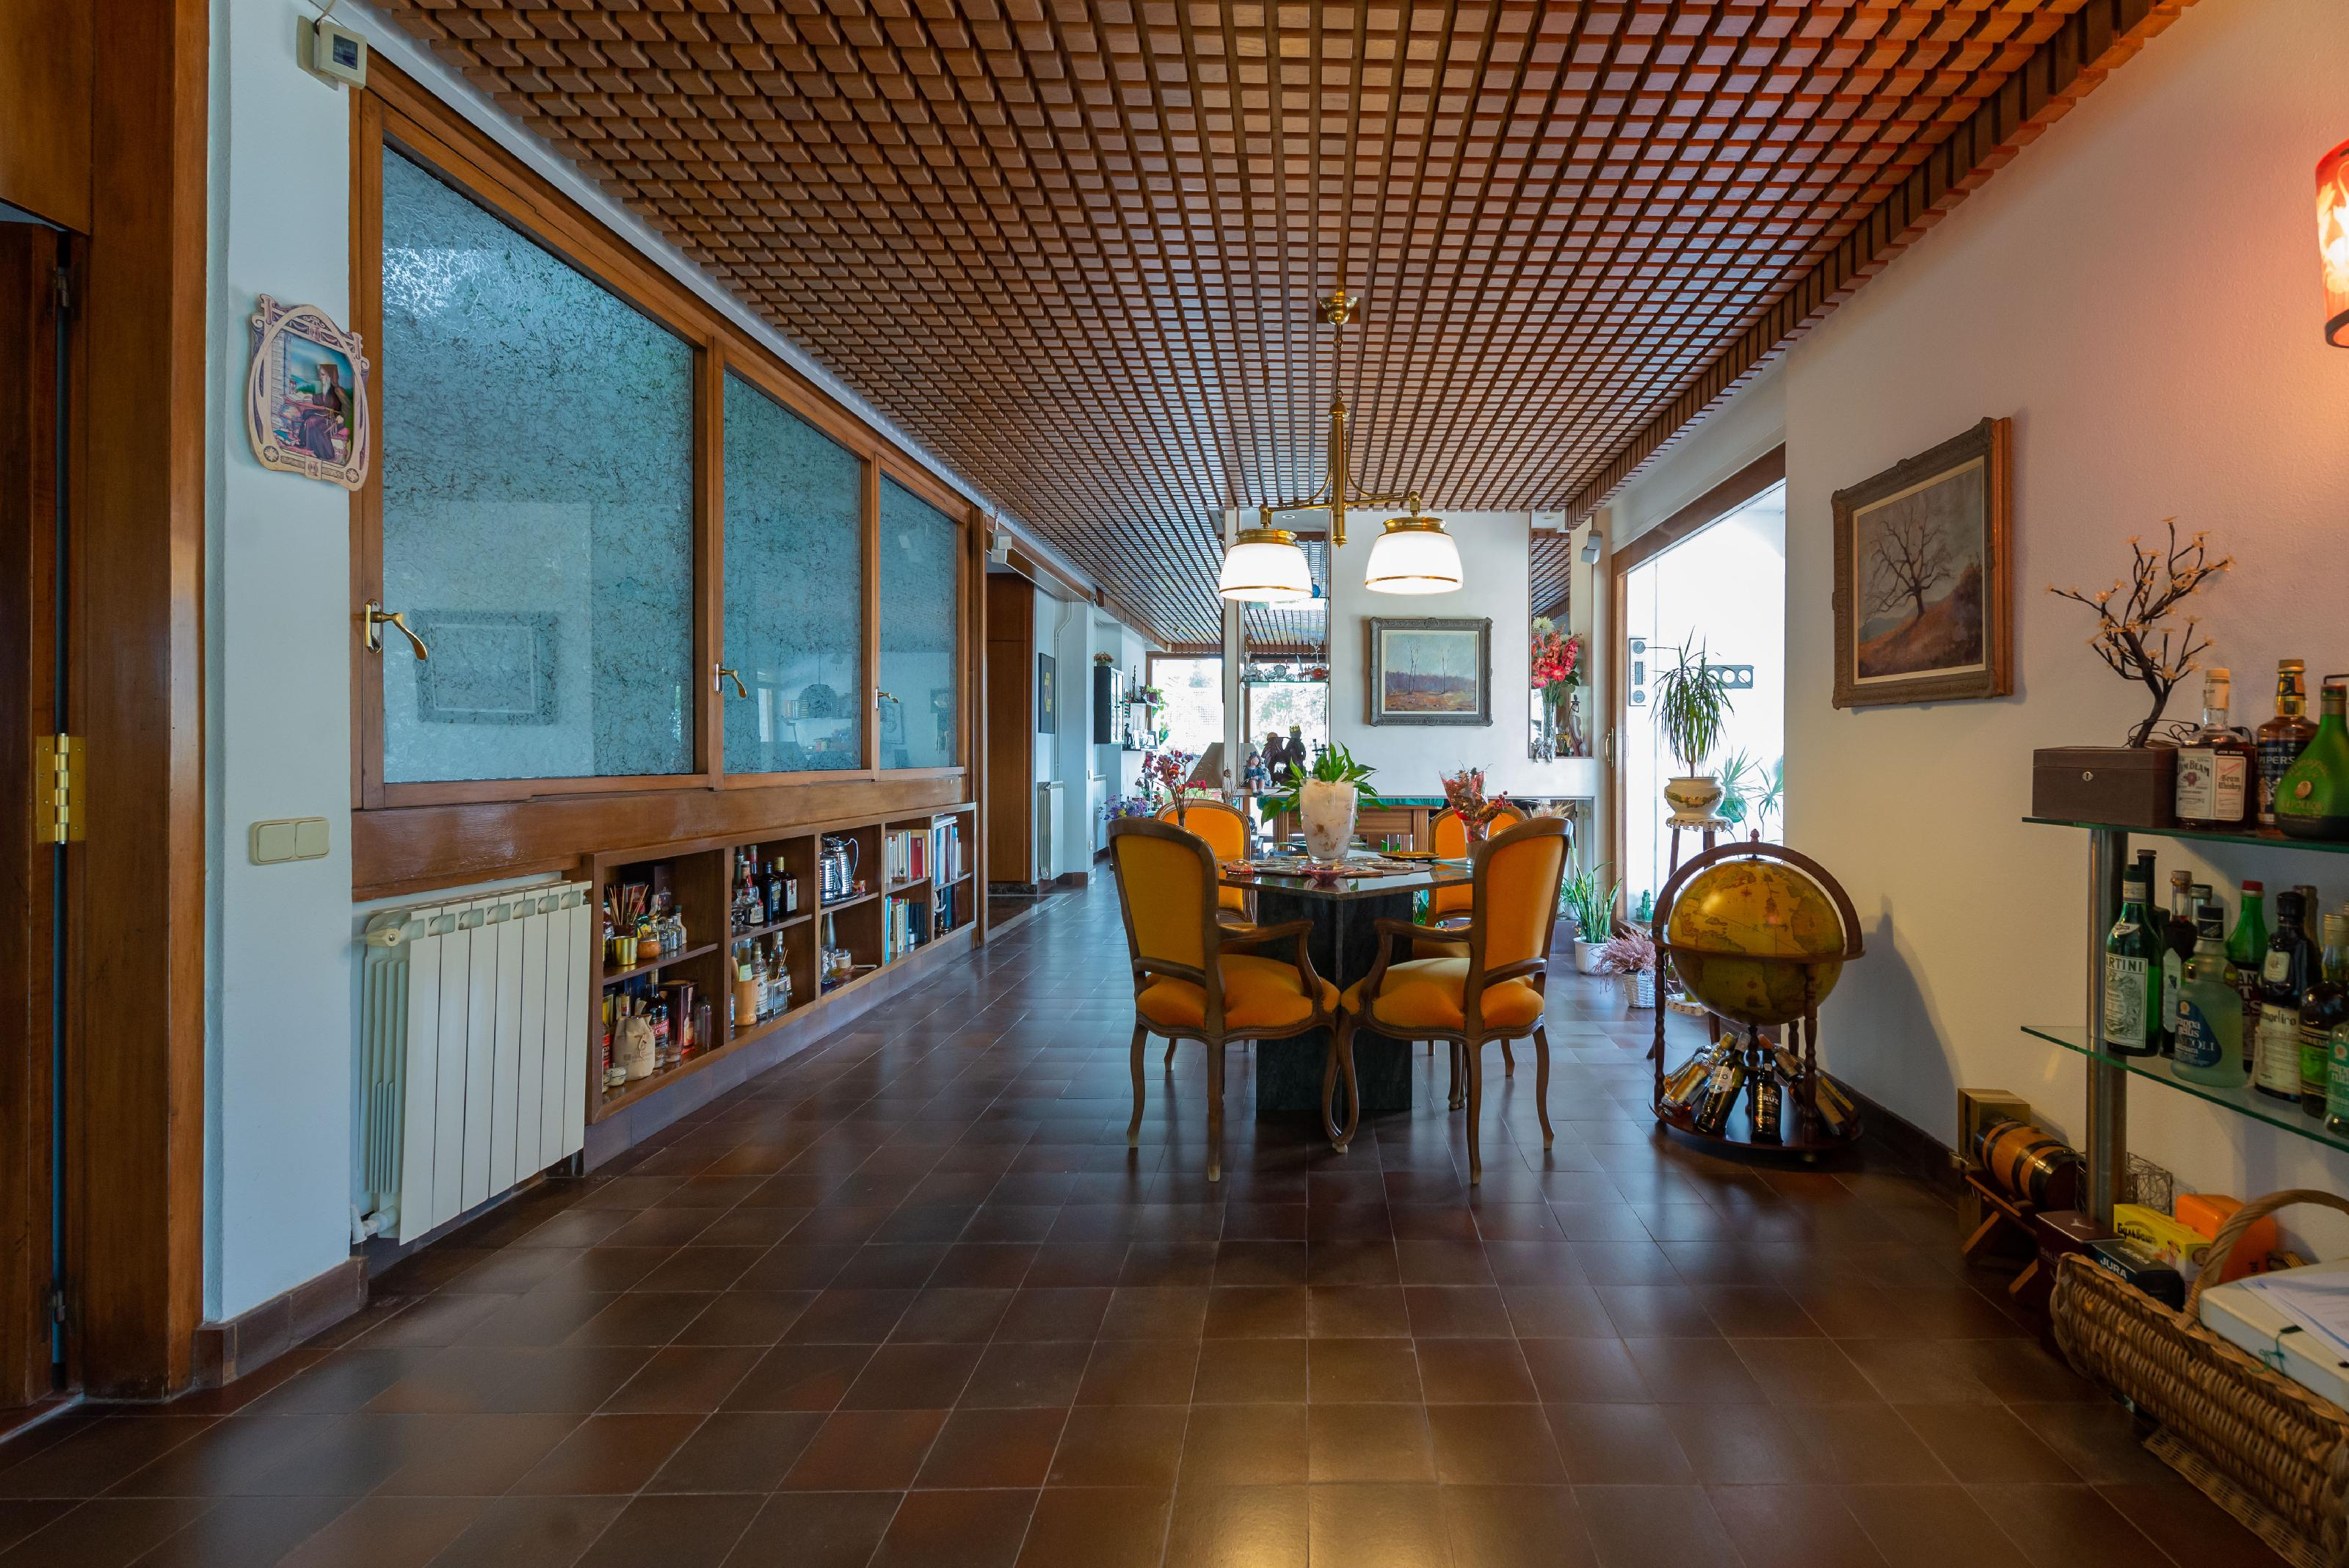 253501 Detached House for sale in Bellamar 7